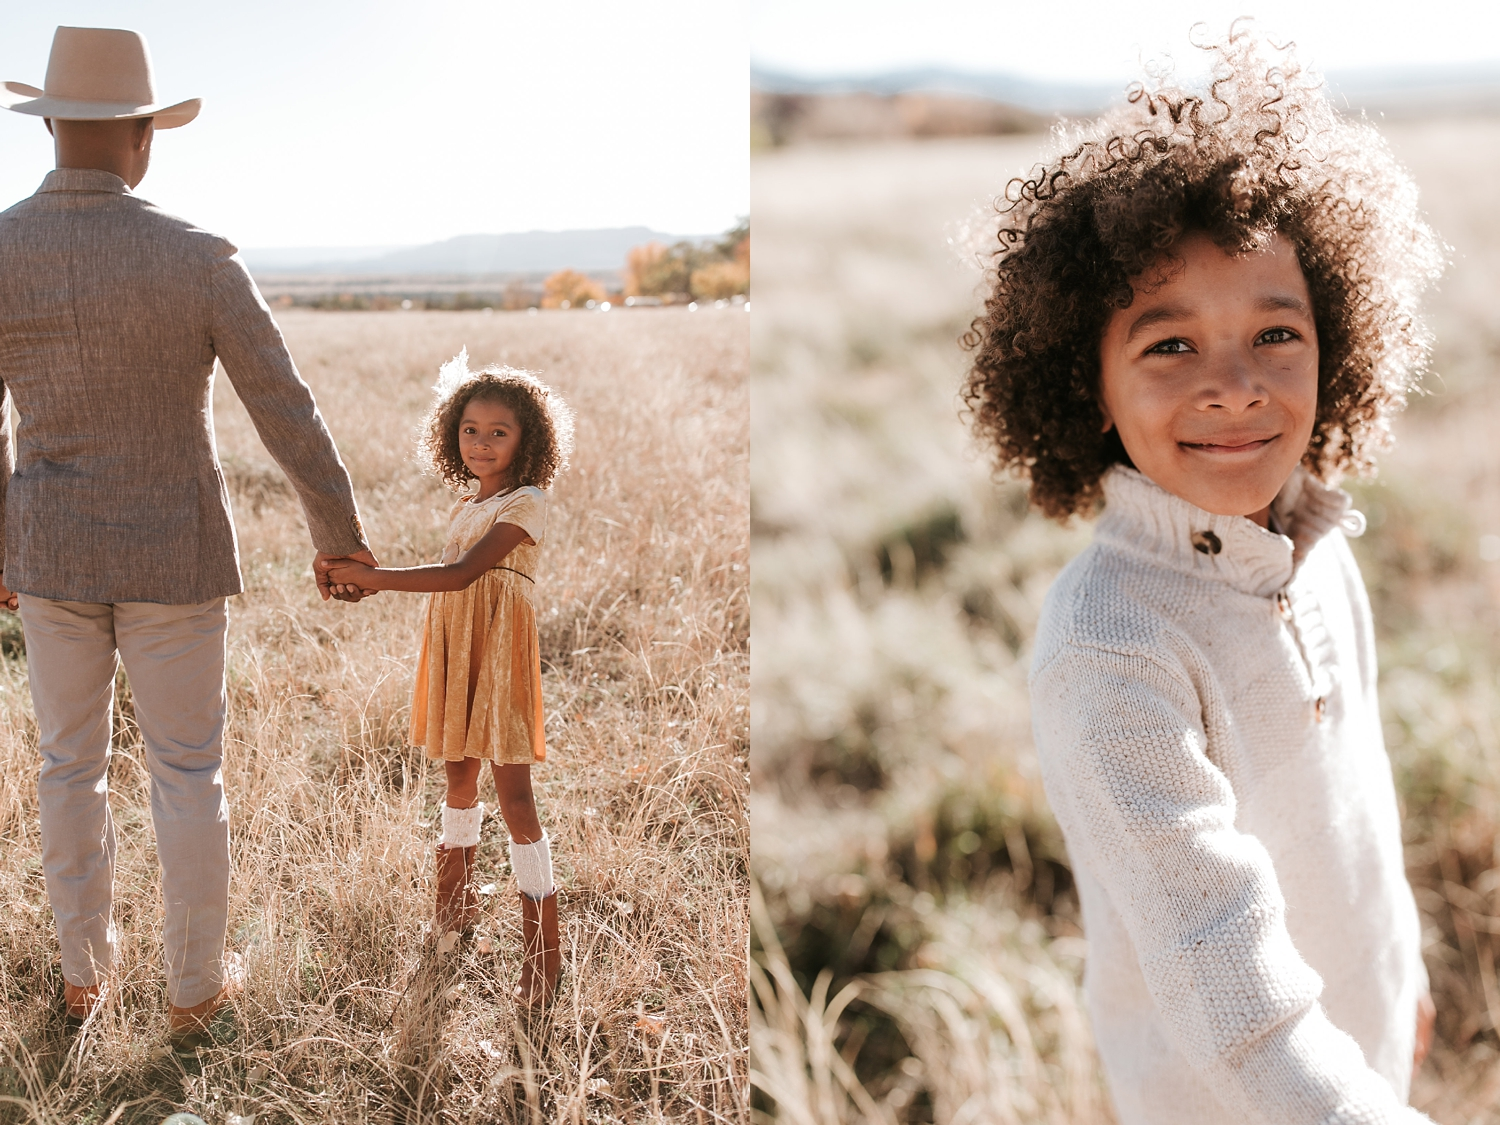 Alicia+lucia+photography+-+albuquerque+wedding+photographer+-+santa+fe+wedding+photography+-+new+mexico+wedding+photographer+-+new+mexico+ghost+ranch+wedding+-+styled+wedding+shoot_0014.jpg